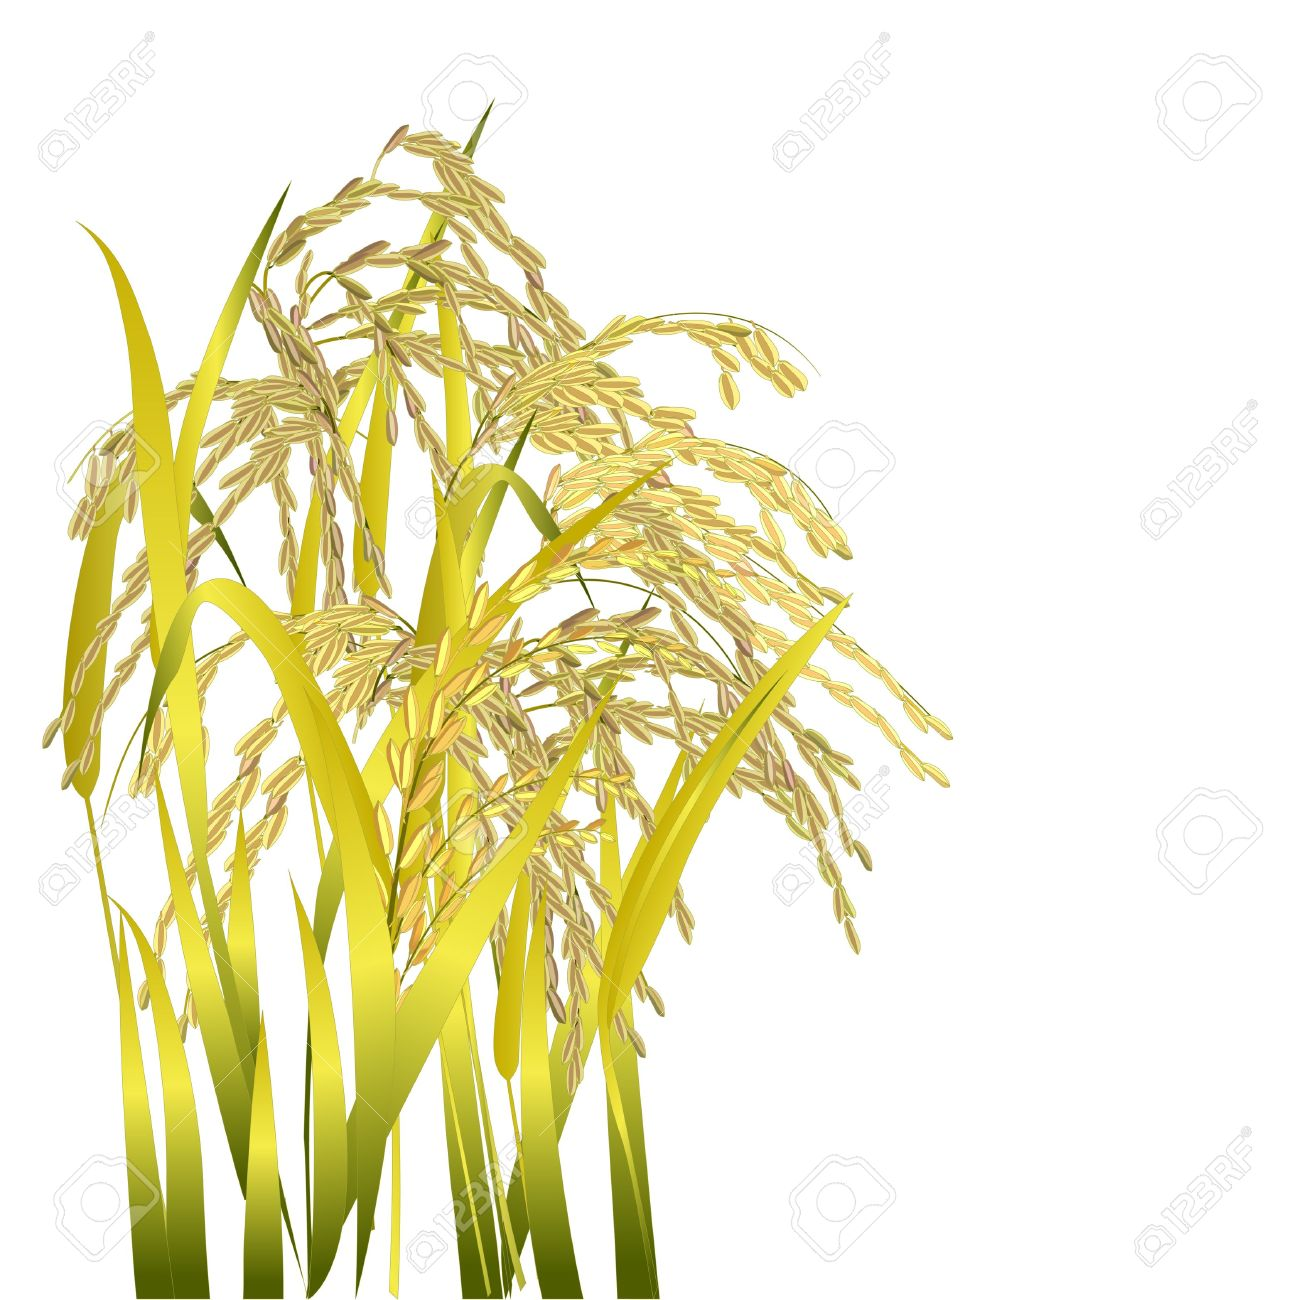 hight resolution of clipart rice grains